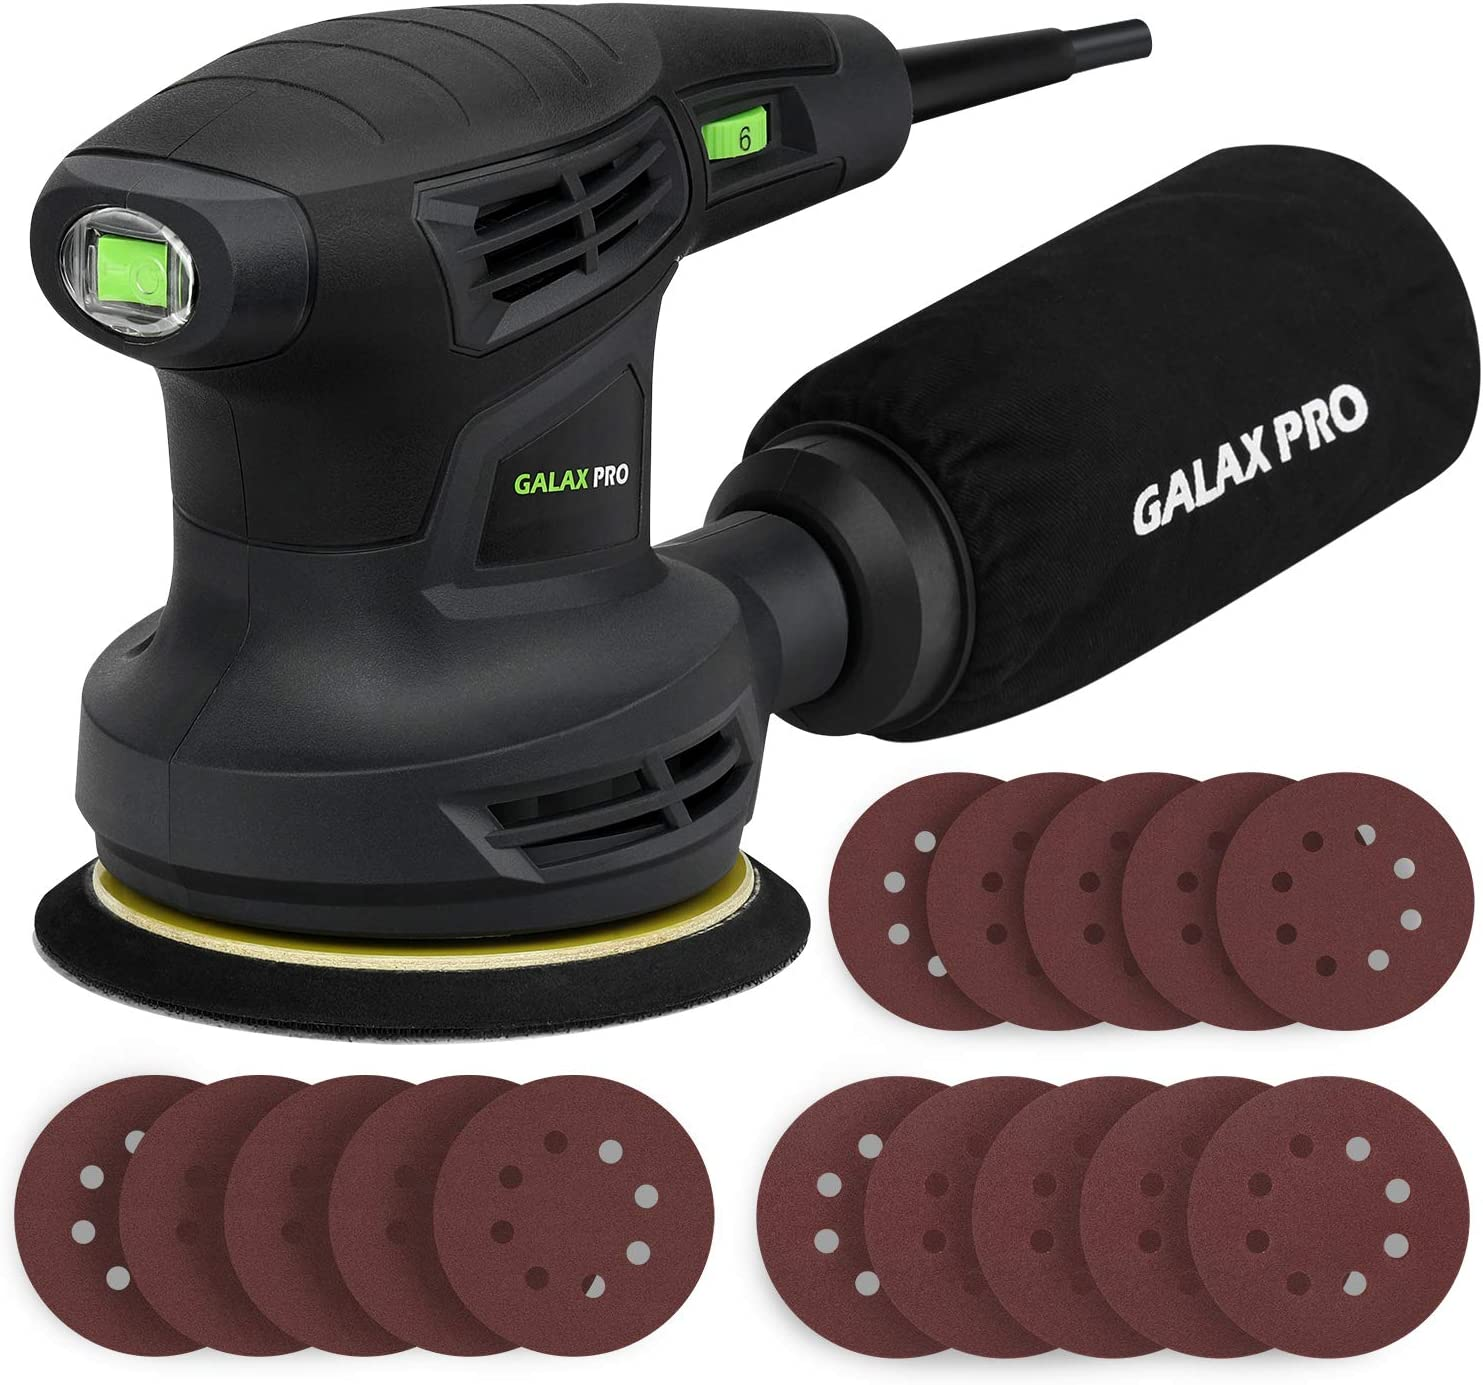 "GALAX PRO 280W 13000OPM Max 6 Variable Speeds Orbital Sander with 15Pcs Sanding Discs, 5"" Random Orbit Sander with Dust Collector for Sanding and Polishing"